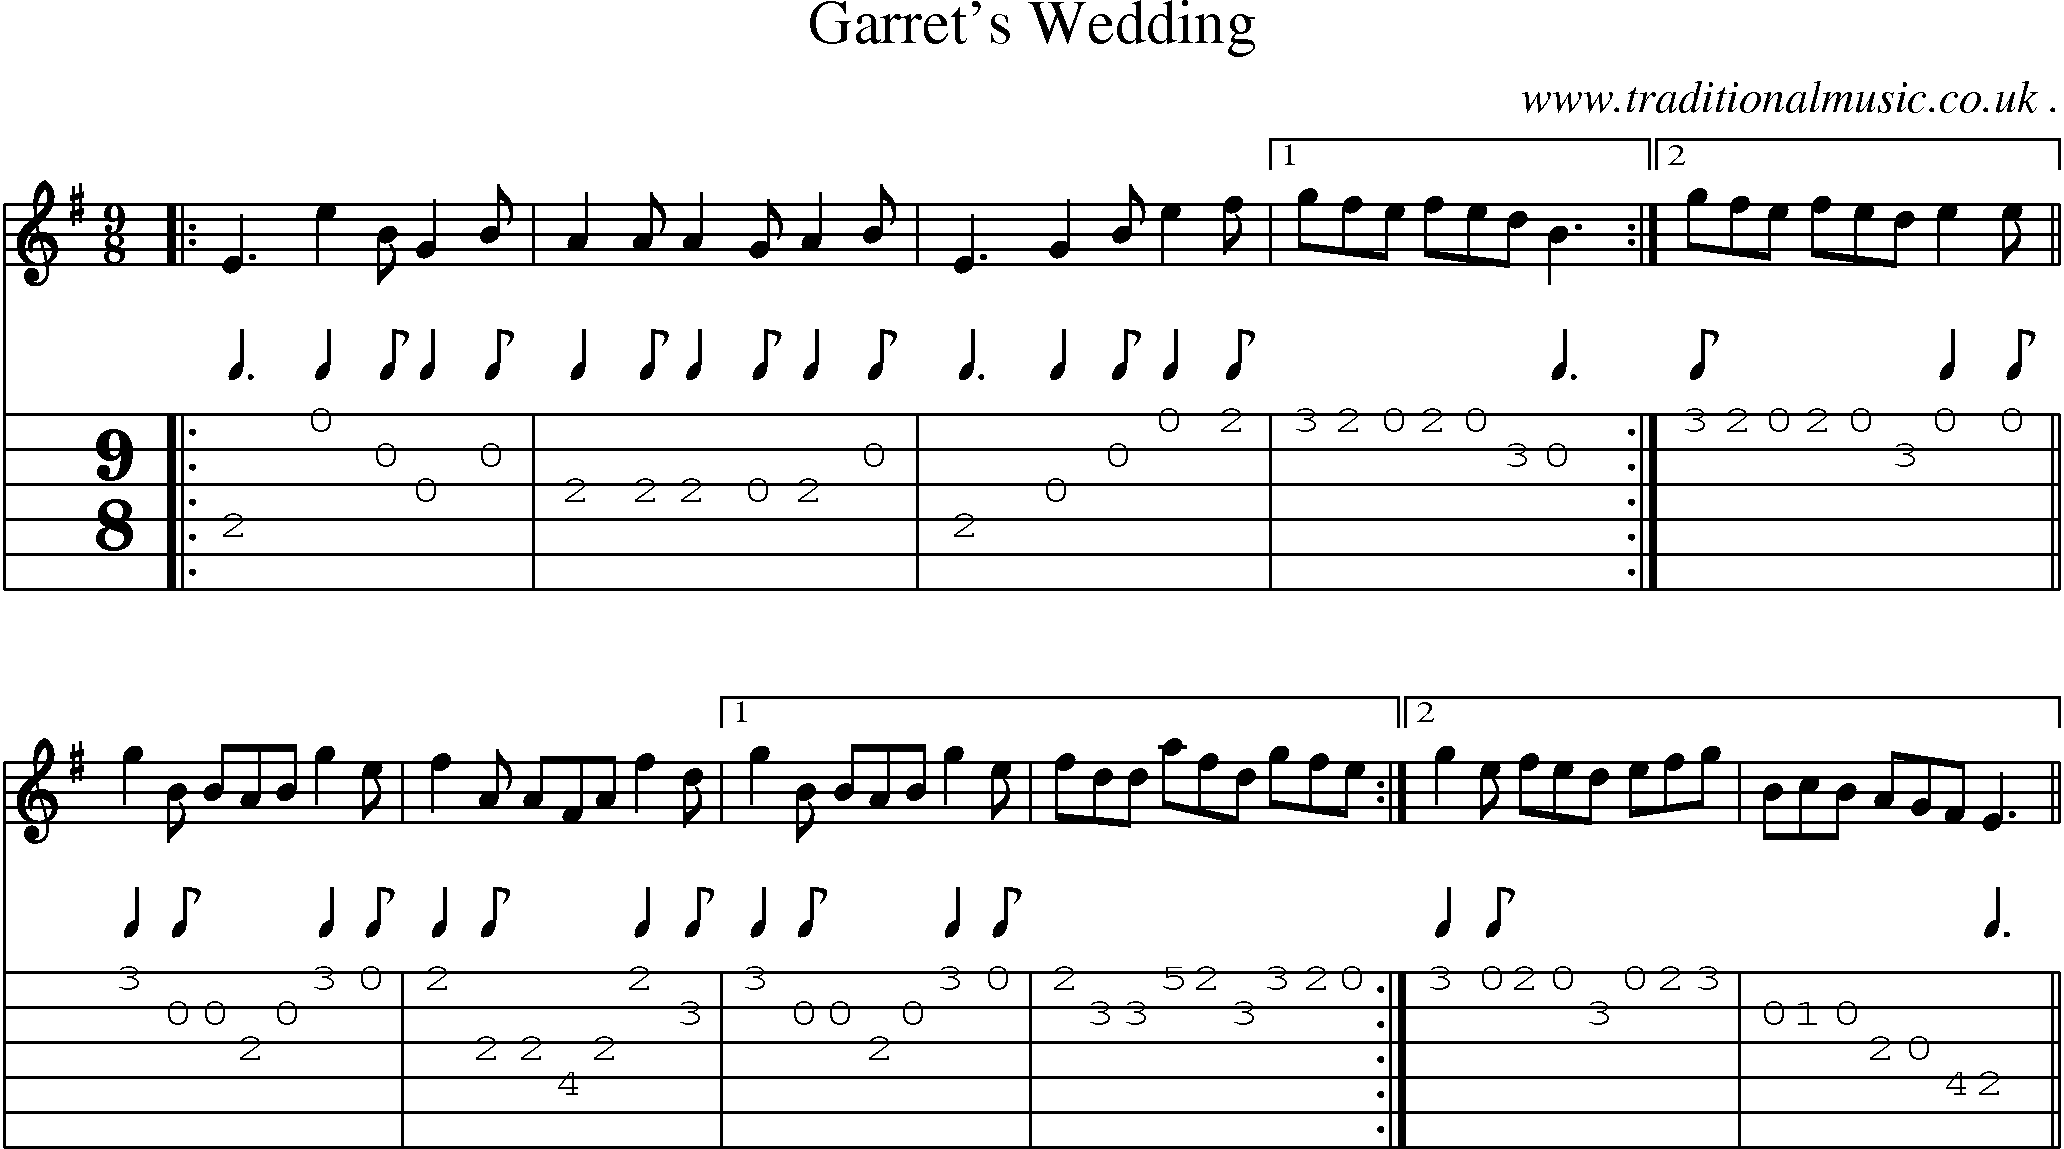 Folk And Traditional Music Sheet Music Guitar Tab Mp3 Audio Midi And PDF For Garrets Wedding